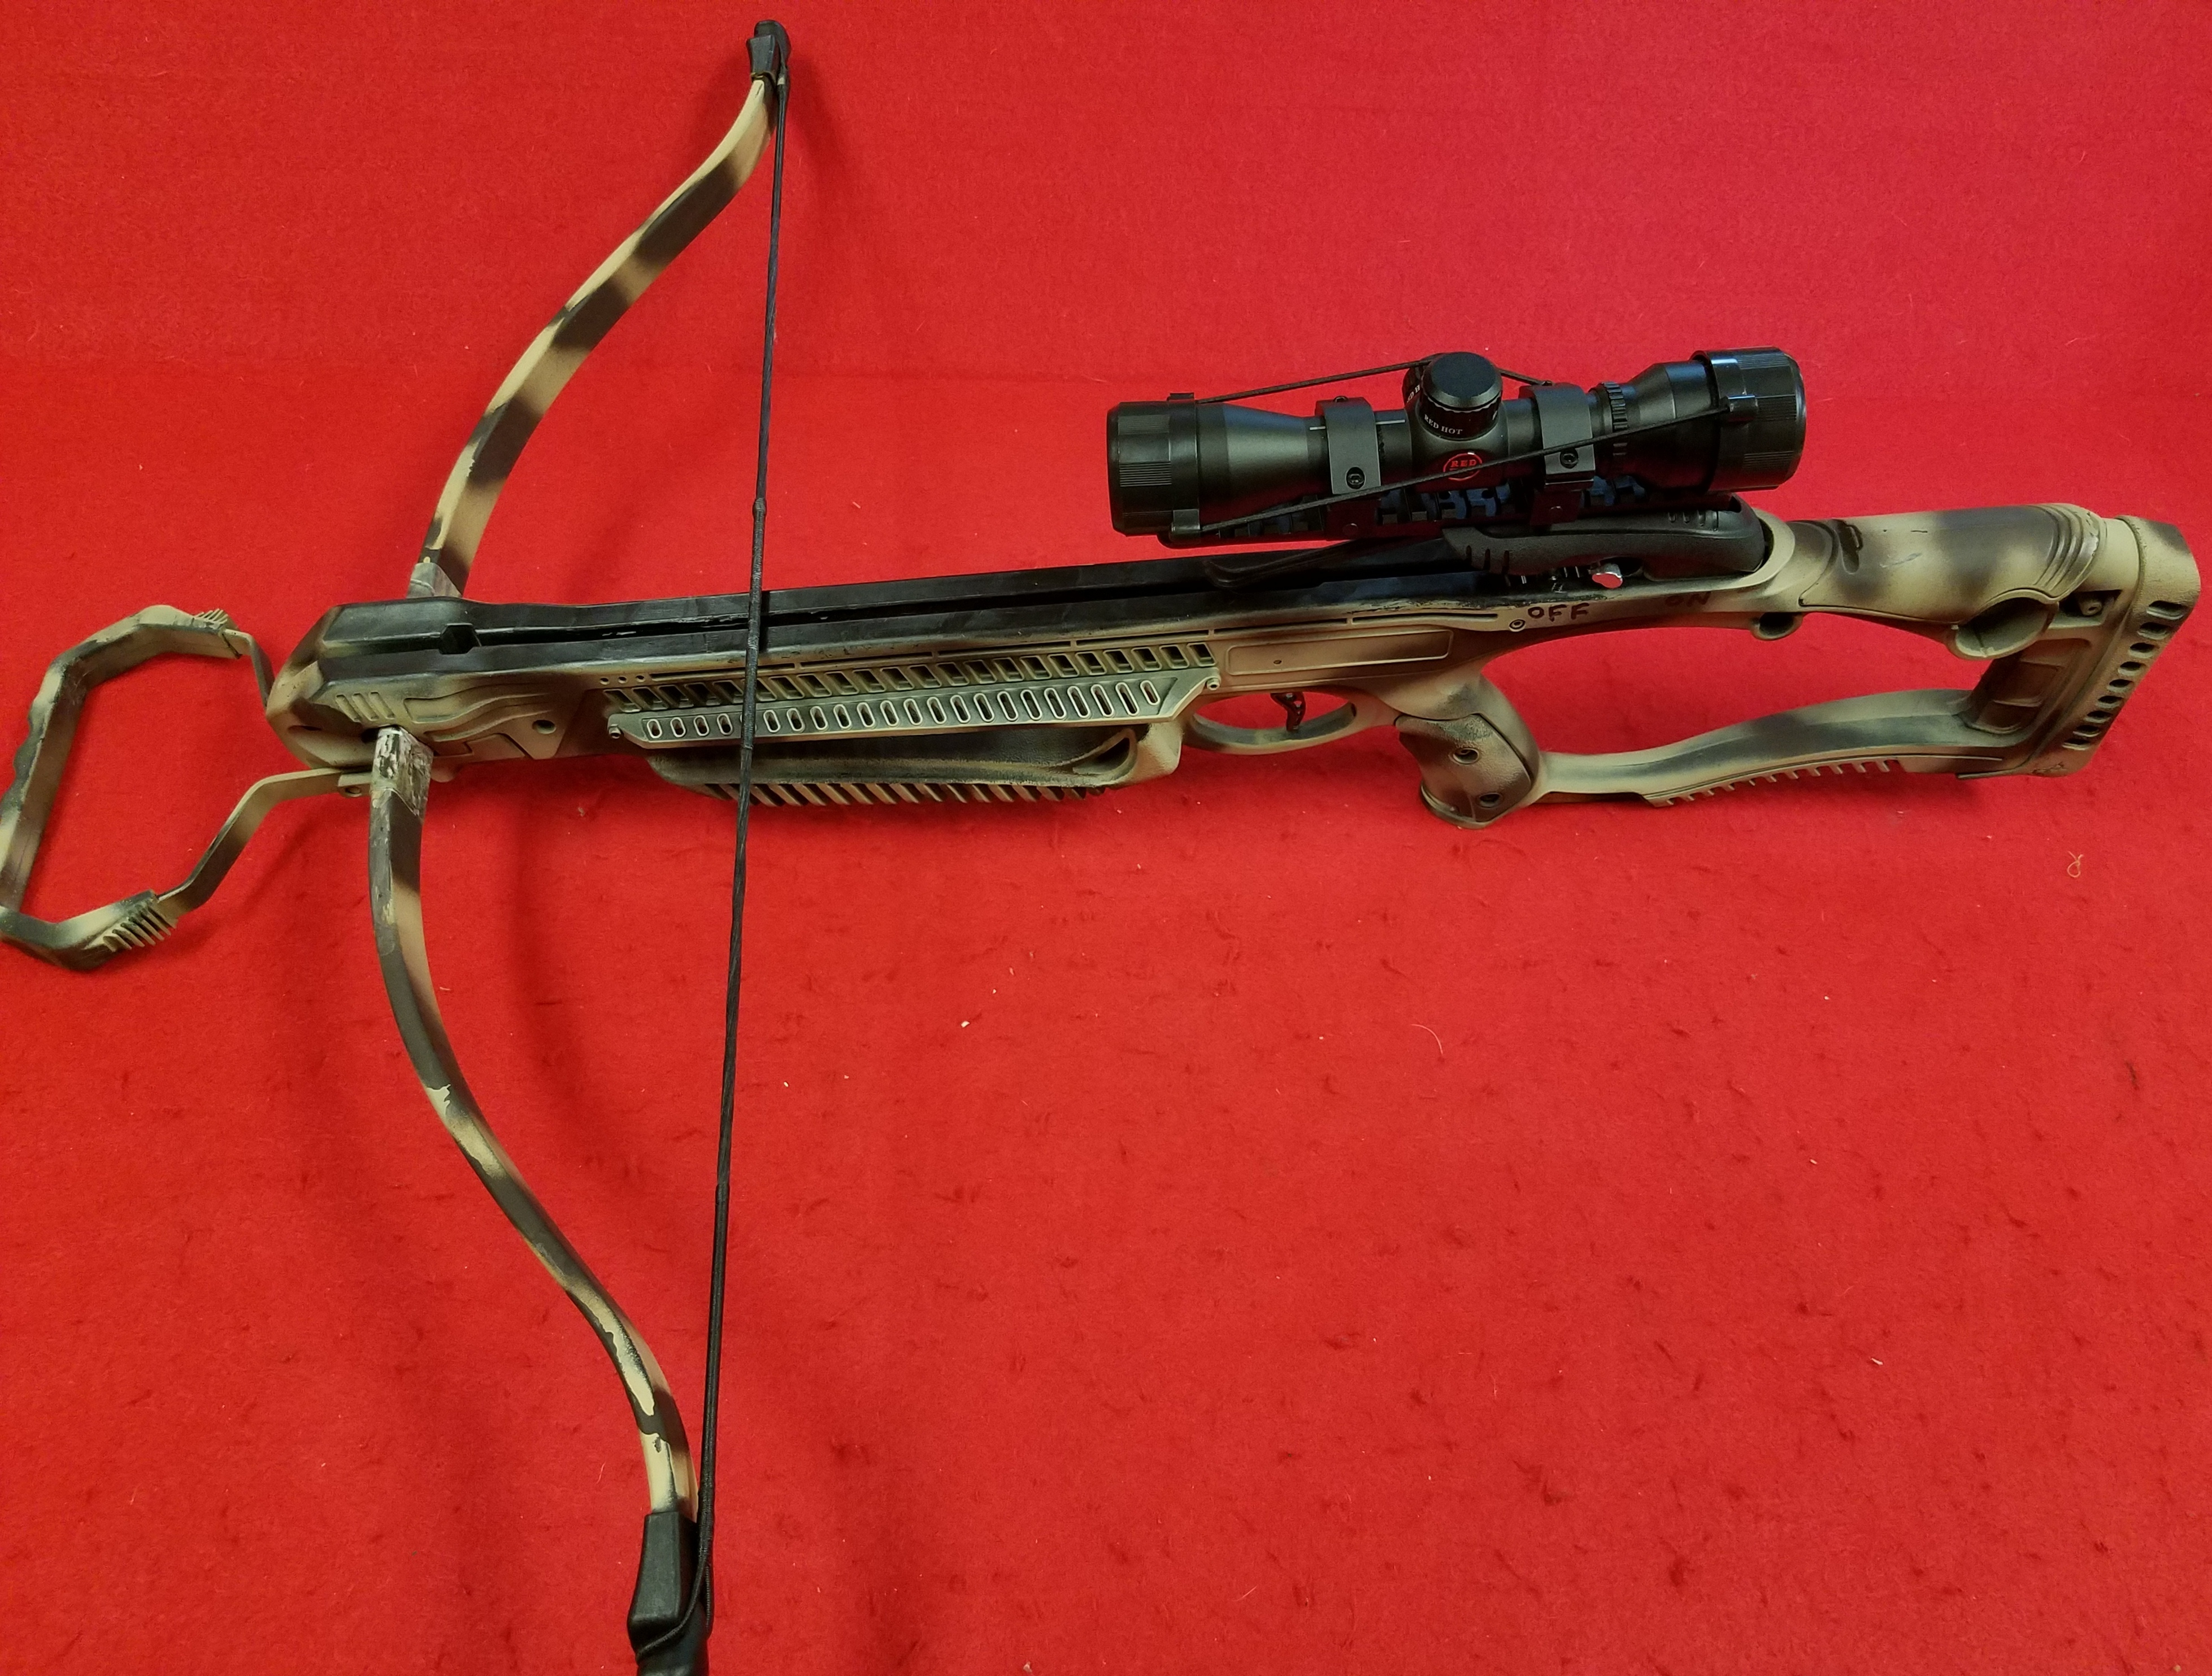 BARNETT - RECRUIT CROSSBOW